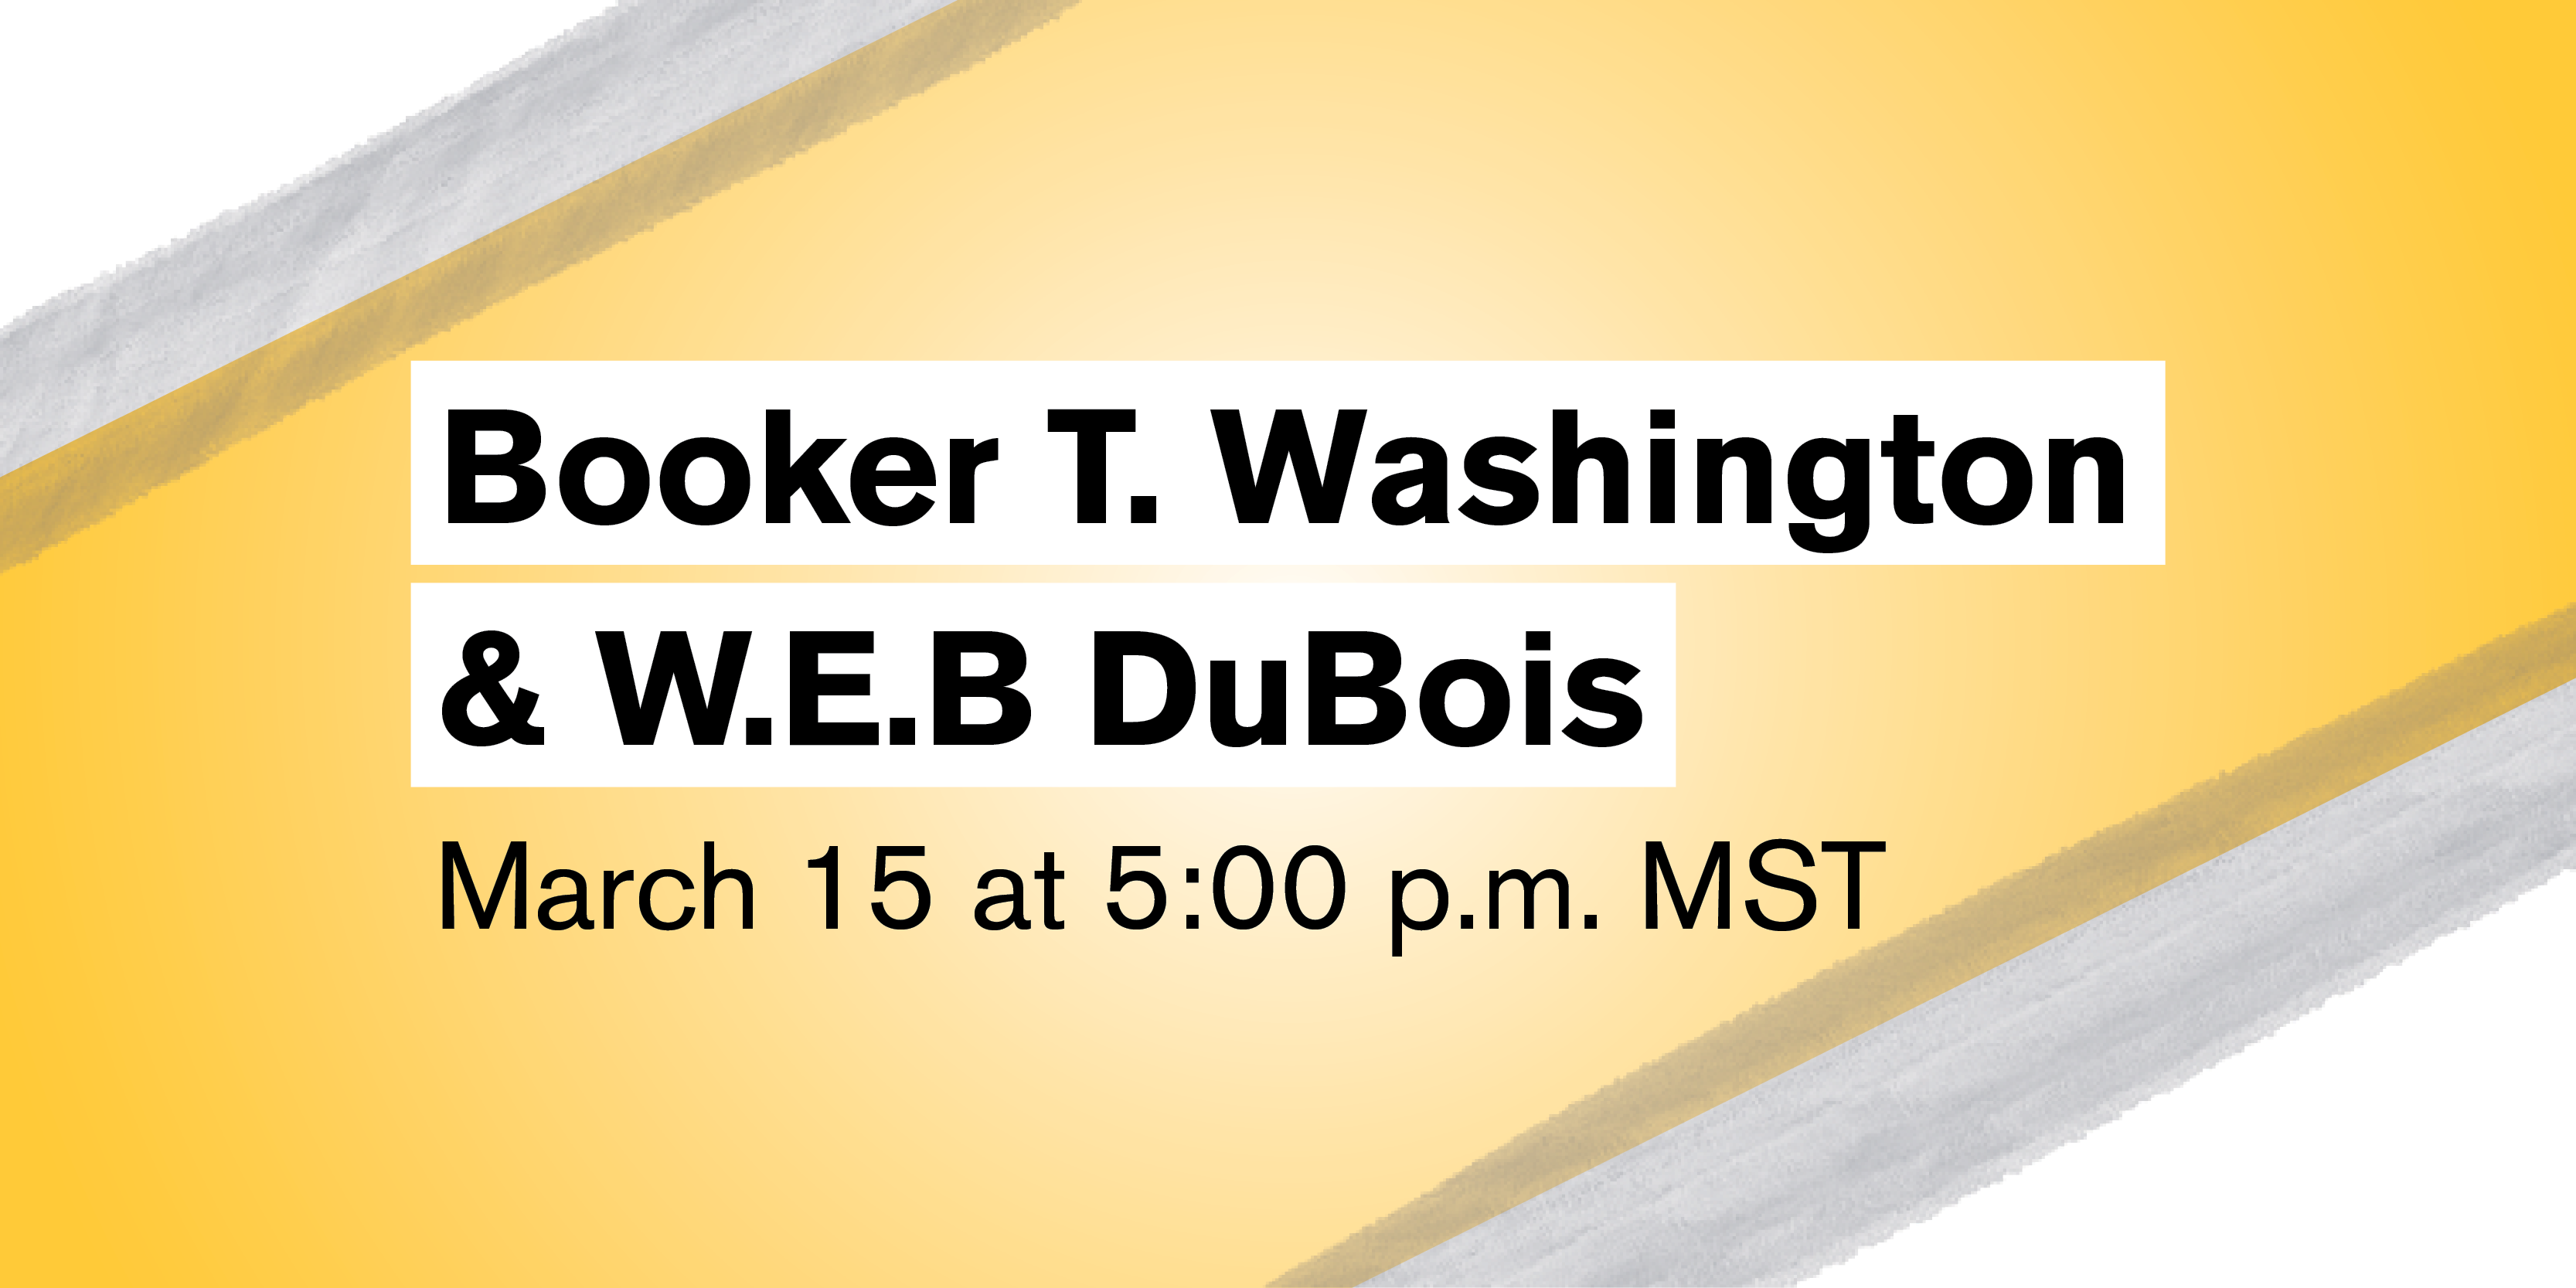 """Text reading """"Booker T. Washington and W.E.B. Dubois"""" for the registration page for event"""